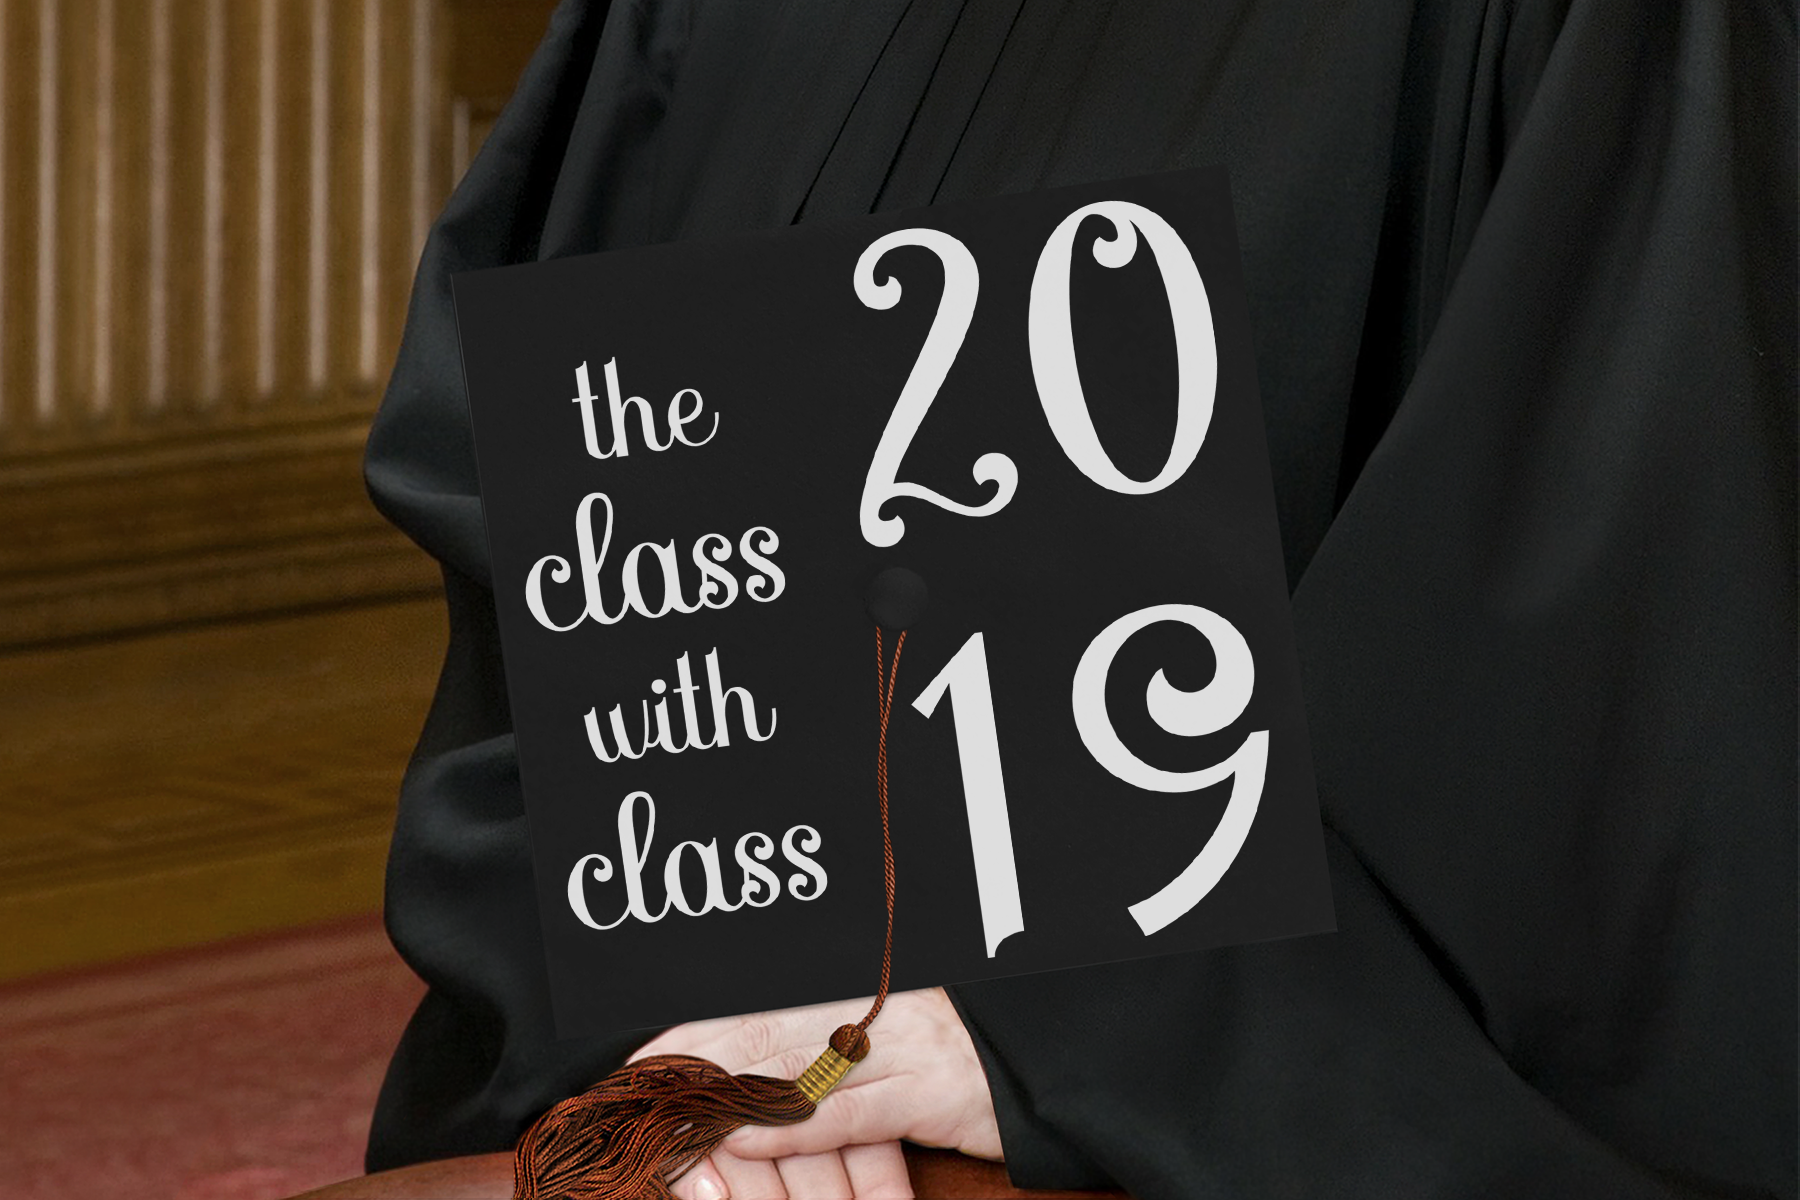 The Class with Class 2019 Grad Cap Design - A Graduation Hat example image 2